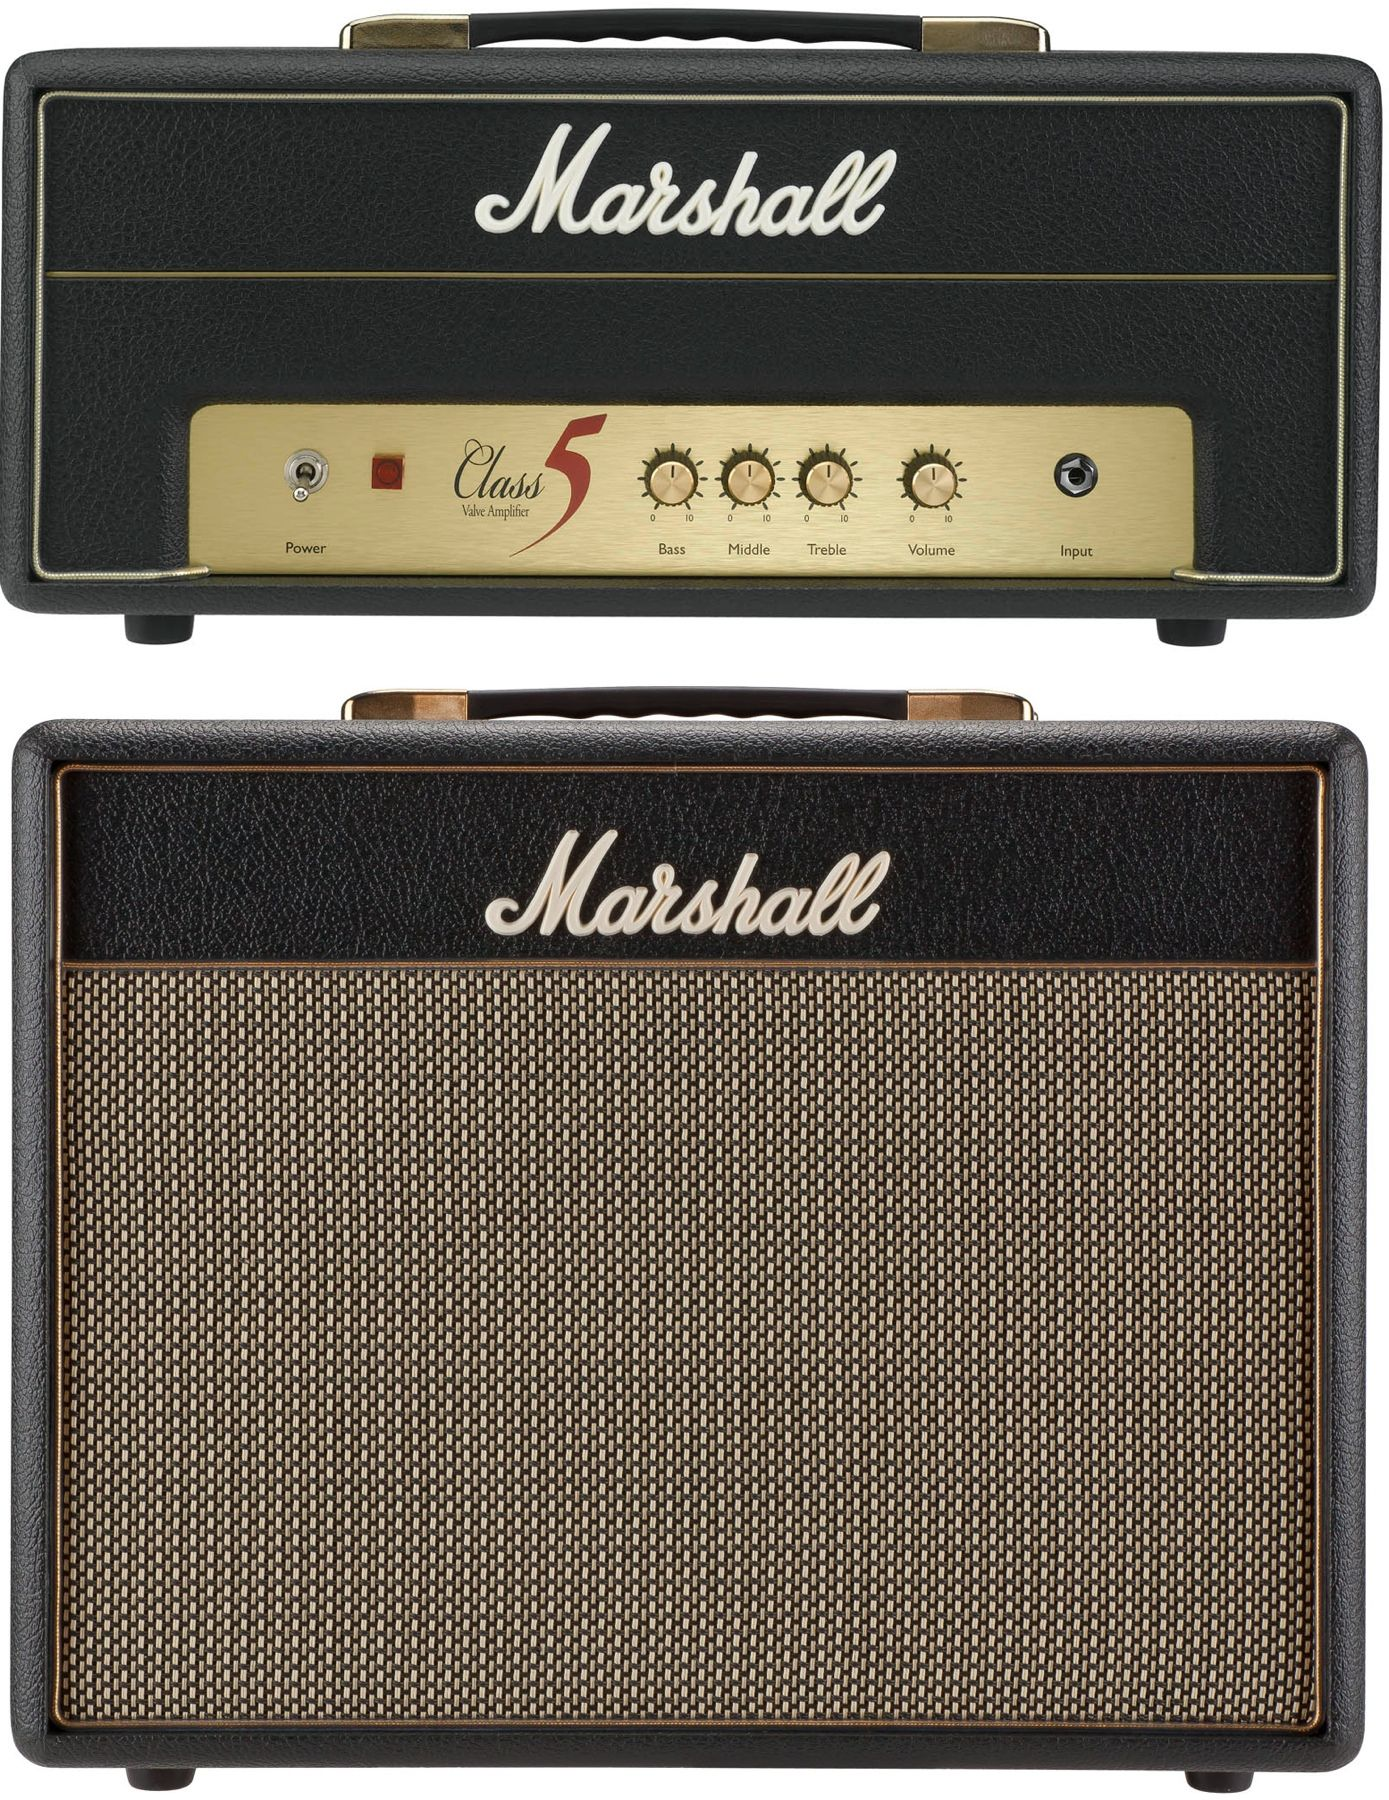 Marshall Class5 Head and C110 Cabinet | Sweetwater.com | Guitars ...